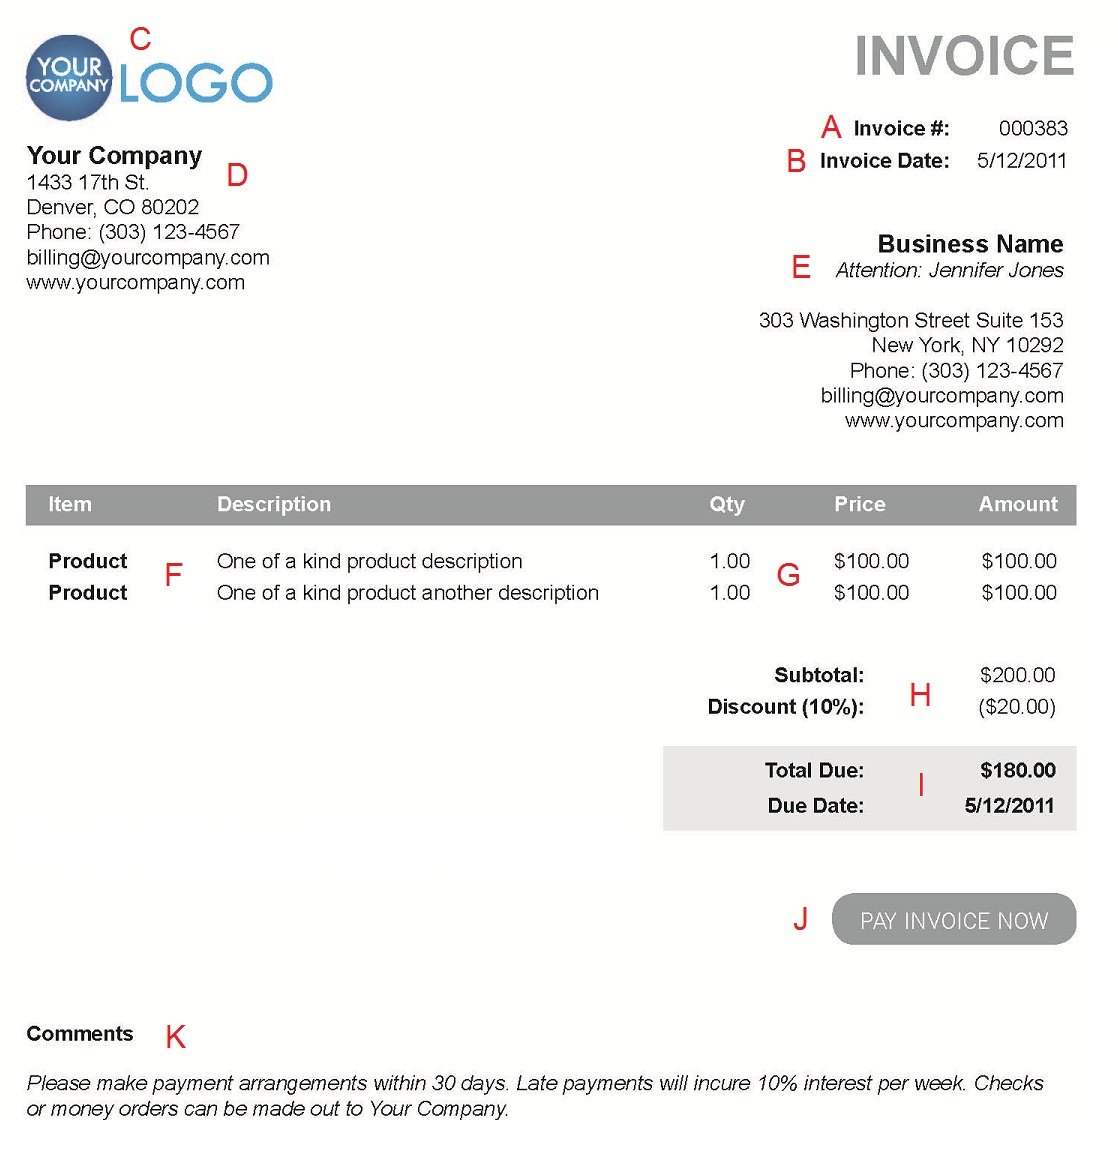 Darkfaderus  Outstanding The  Different Sections Of An Electronic Payment Invoice With Outstanding A  With Delightful Carbon Invoice Pads Also Builders Invoice Template In Addition Receipts And Invoices And Invoice Templa As Well As Free Online Invoicing System Additionally Invoice Softwares From Paysimplecom With Darkfaderus  Outstanding The  Different Sections Of An Electronic Payment Invoice With Delightful A  And Outstanding Carbon Invoice Pads Also Builders Invoice Template In Addition Receipts And Invoices From Paysimplecom